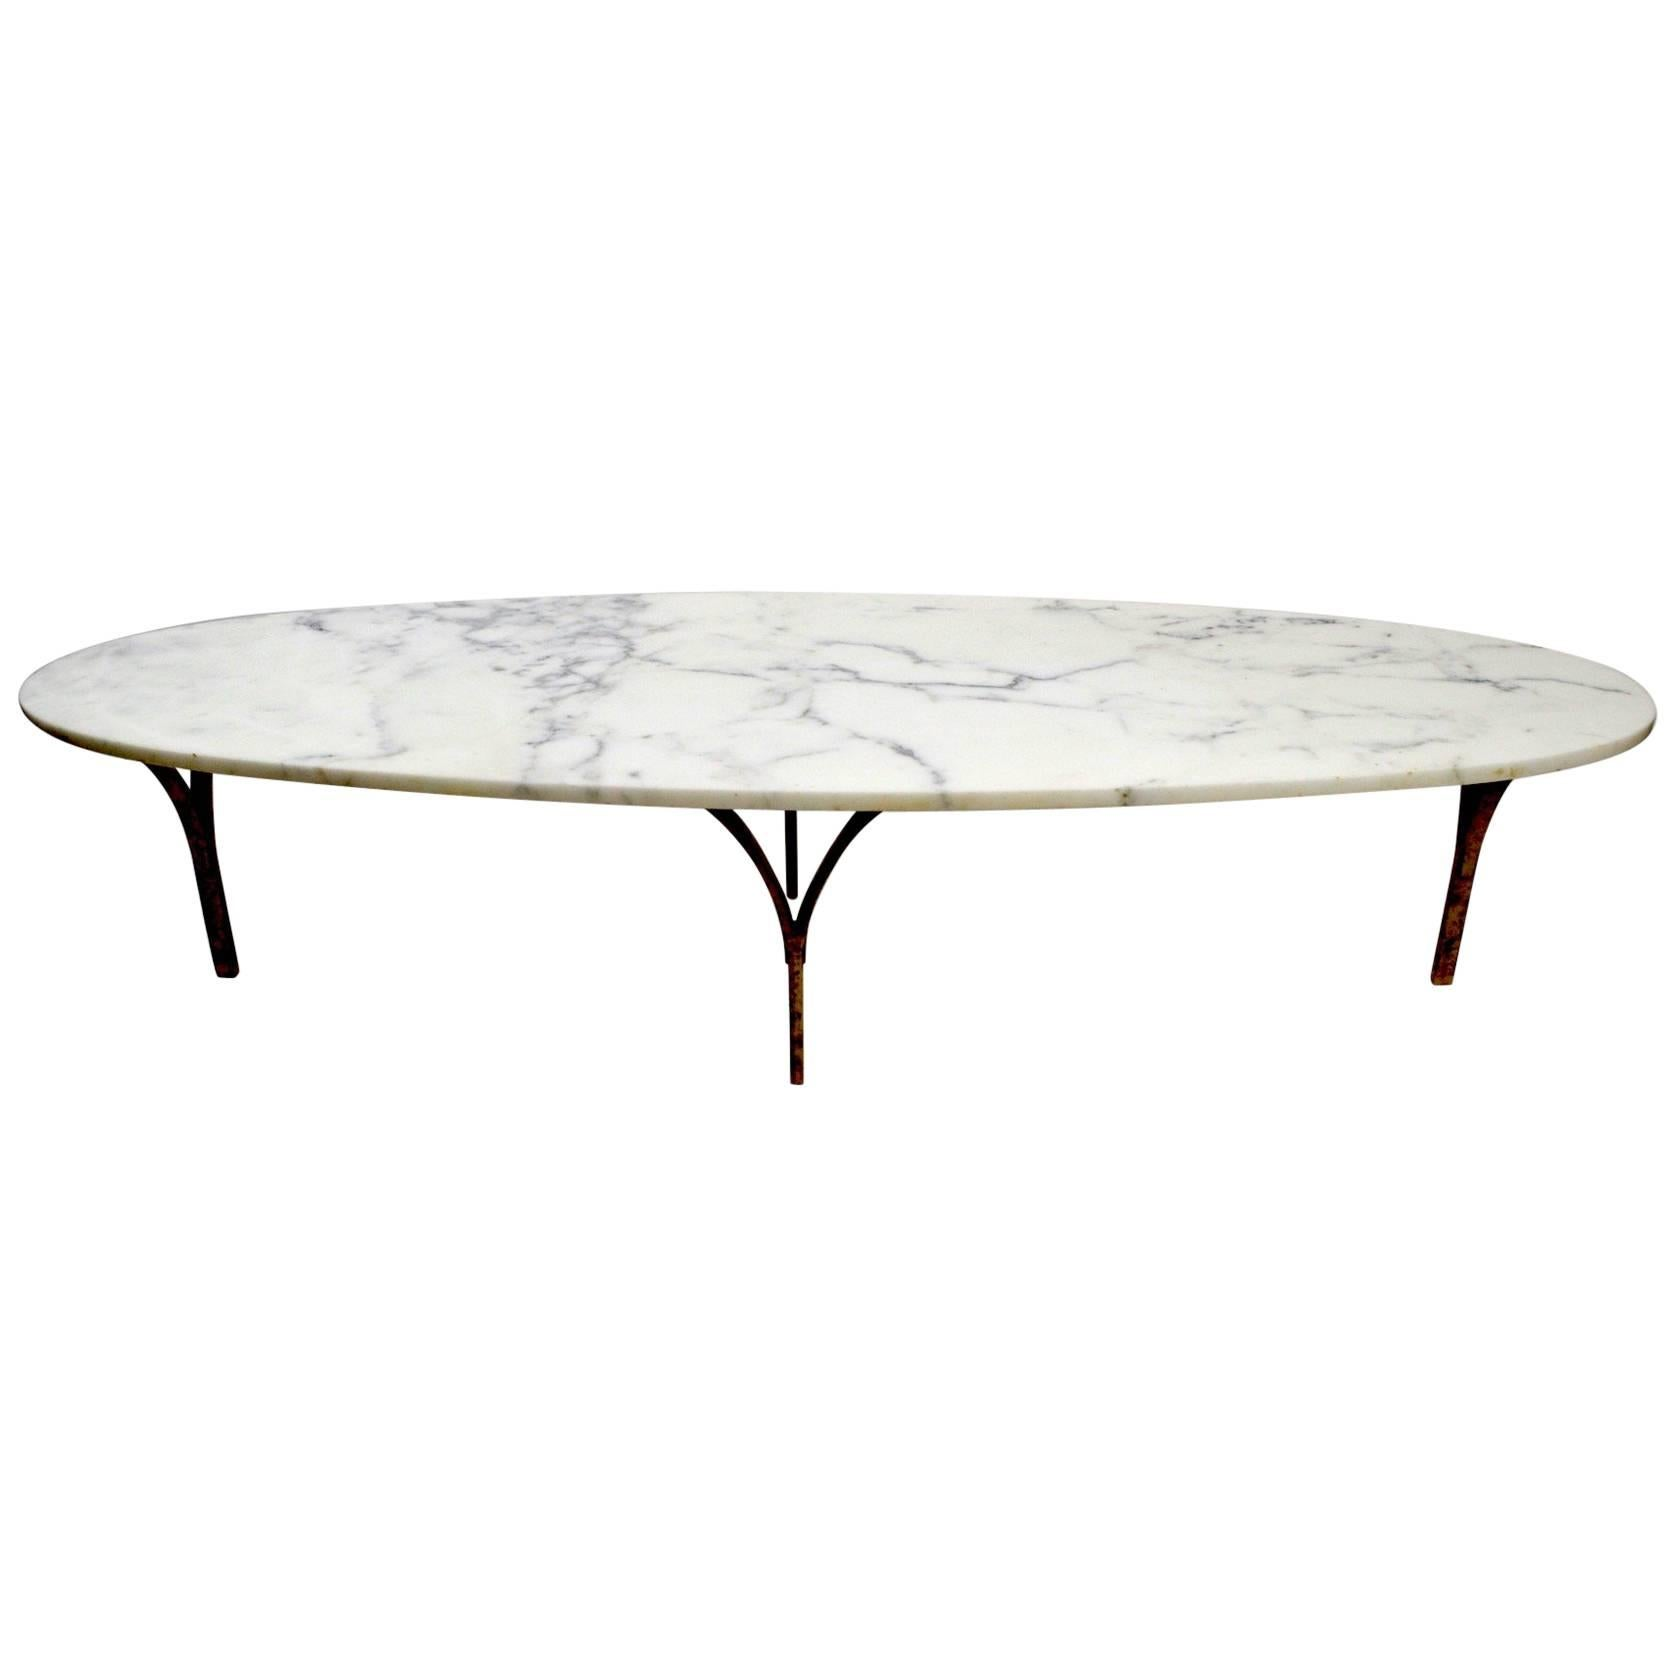 White Marble Top French OverSized Round Wood Coffee Table with